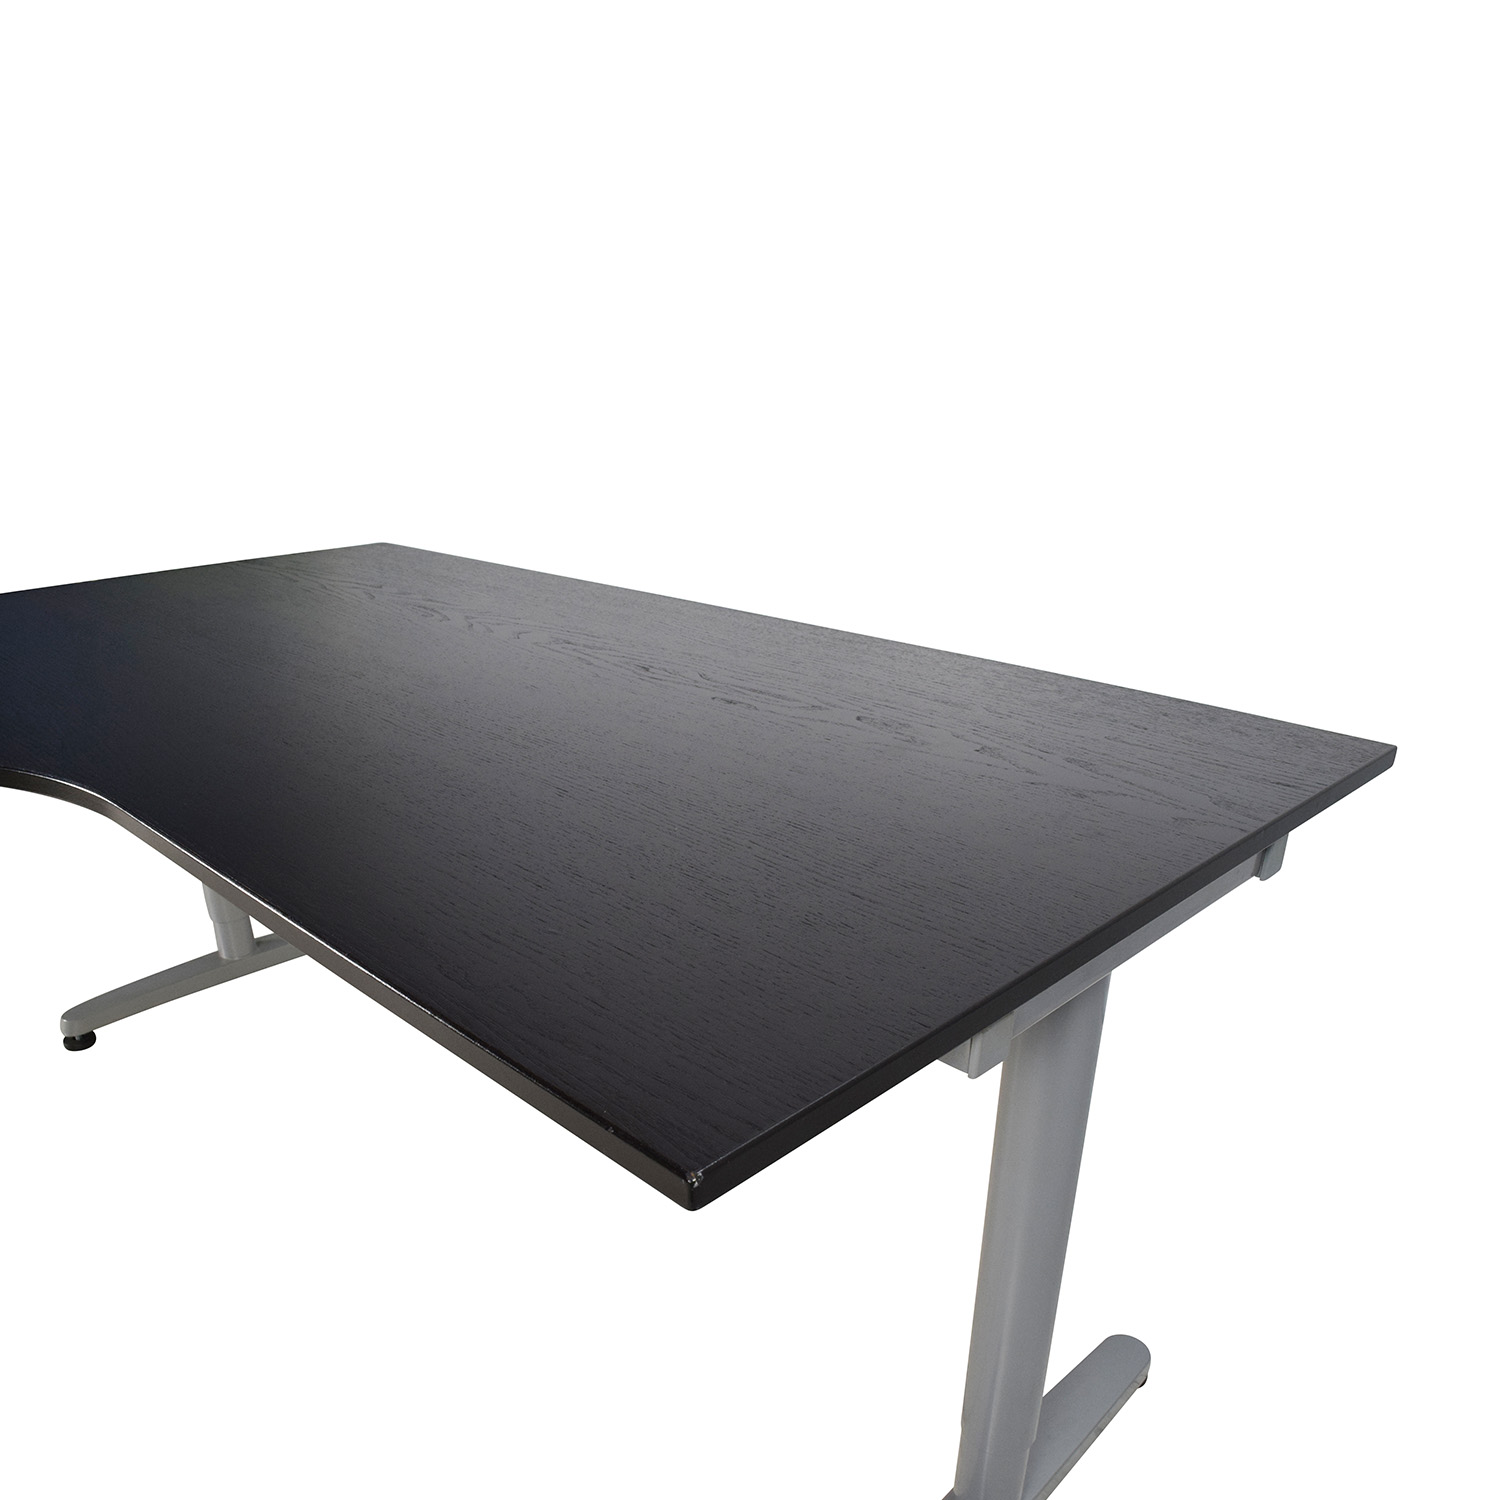 ikea office desks. Shop IKEA Galant Corner Desk Online Ikea Office Desks A